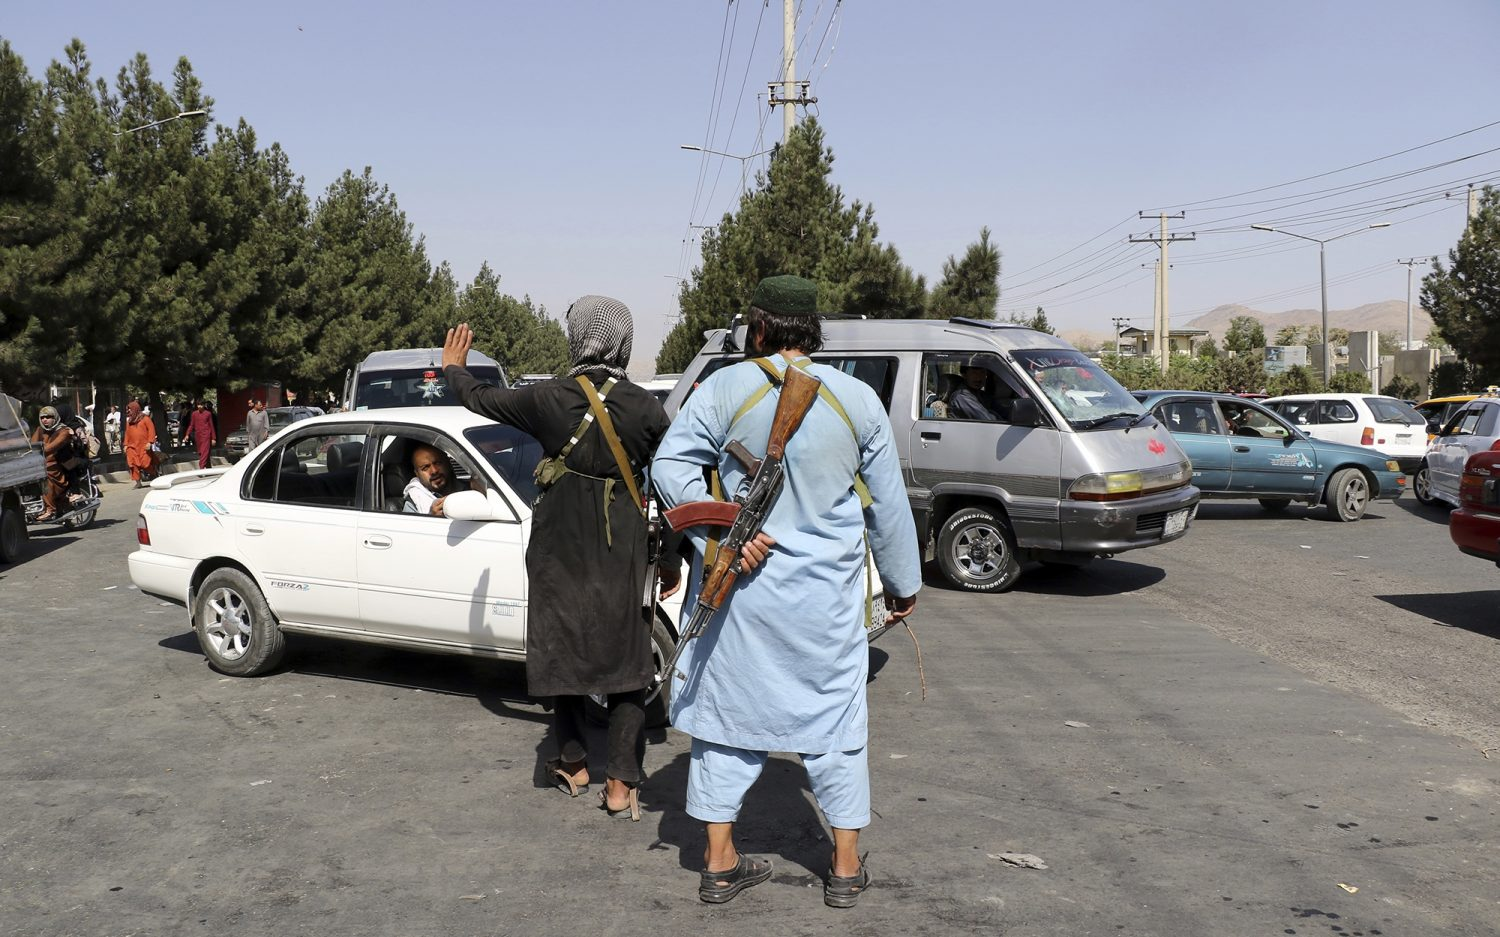 Forces in Kabul on high alert